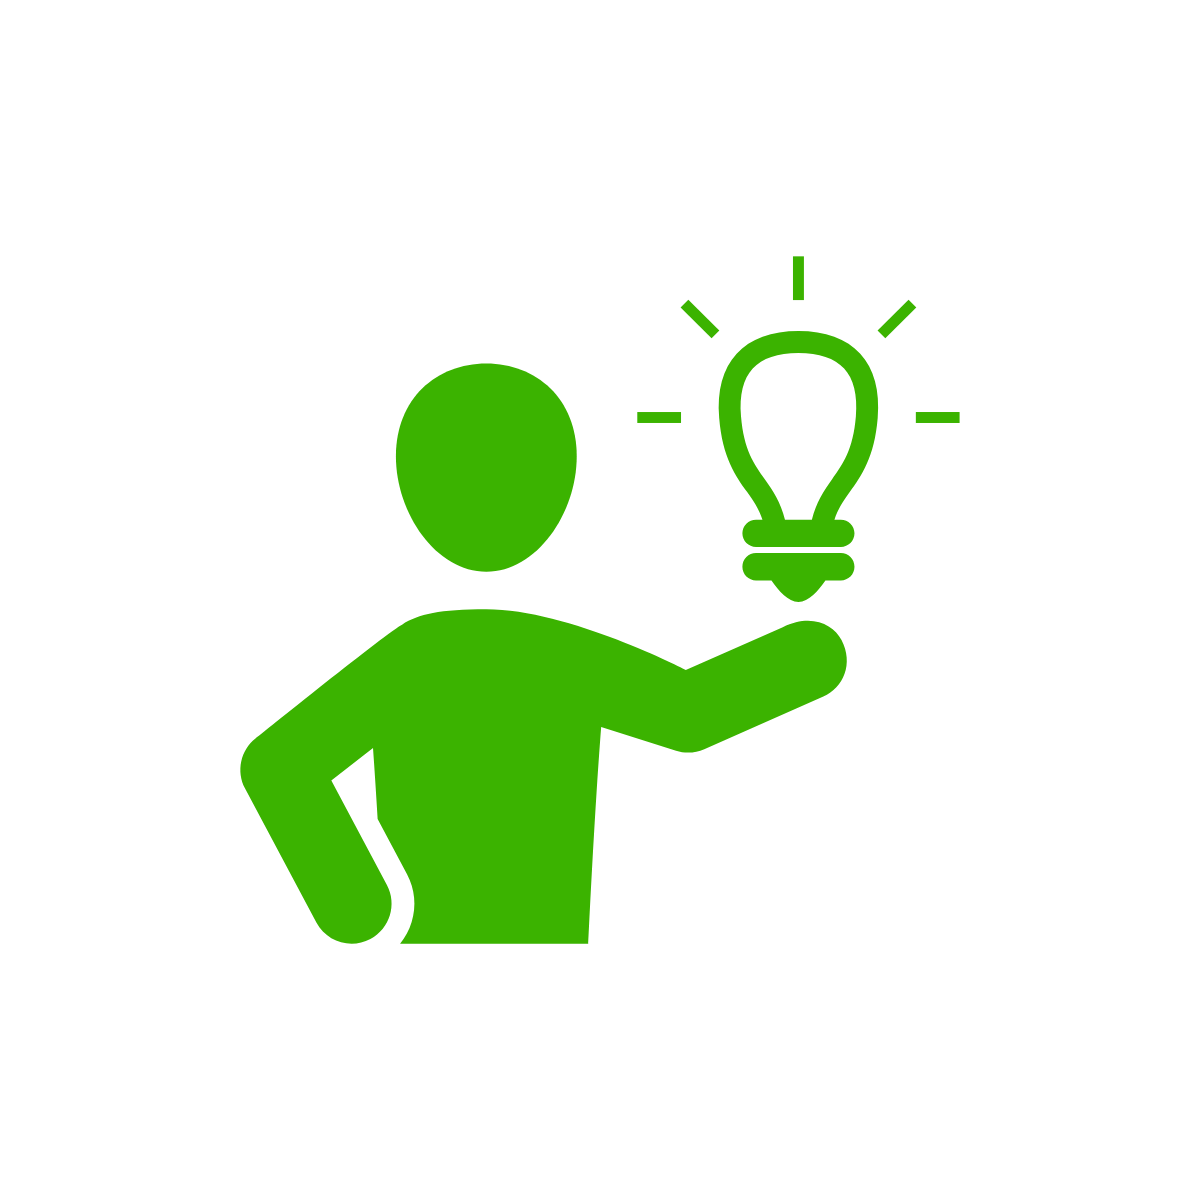 line drawing of a person holding a light bulb